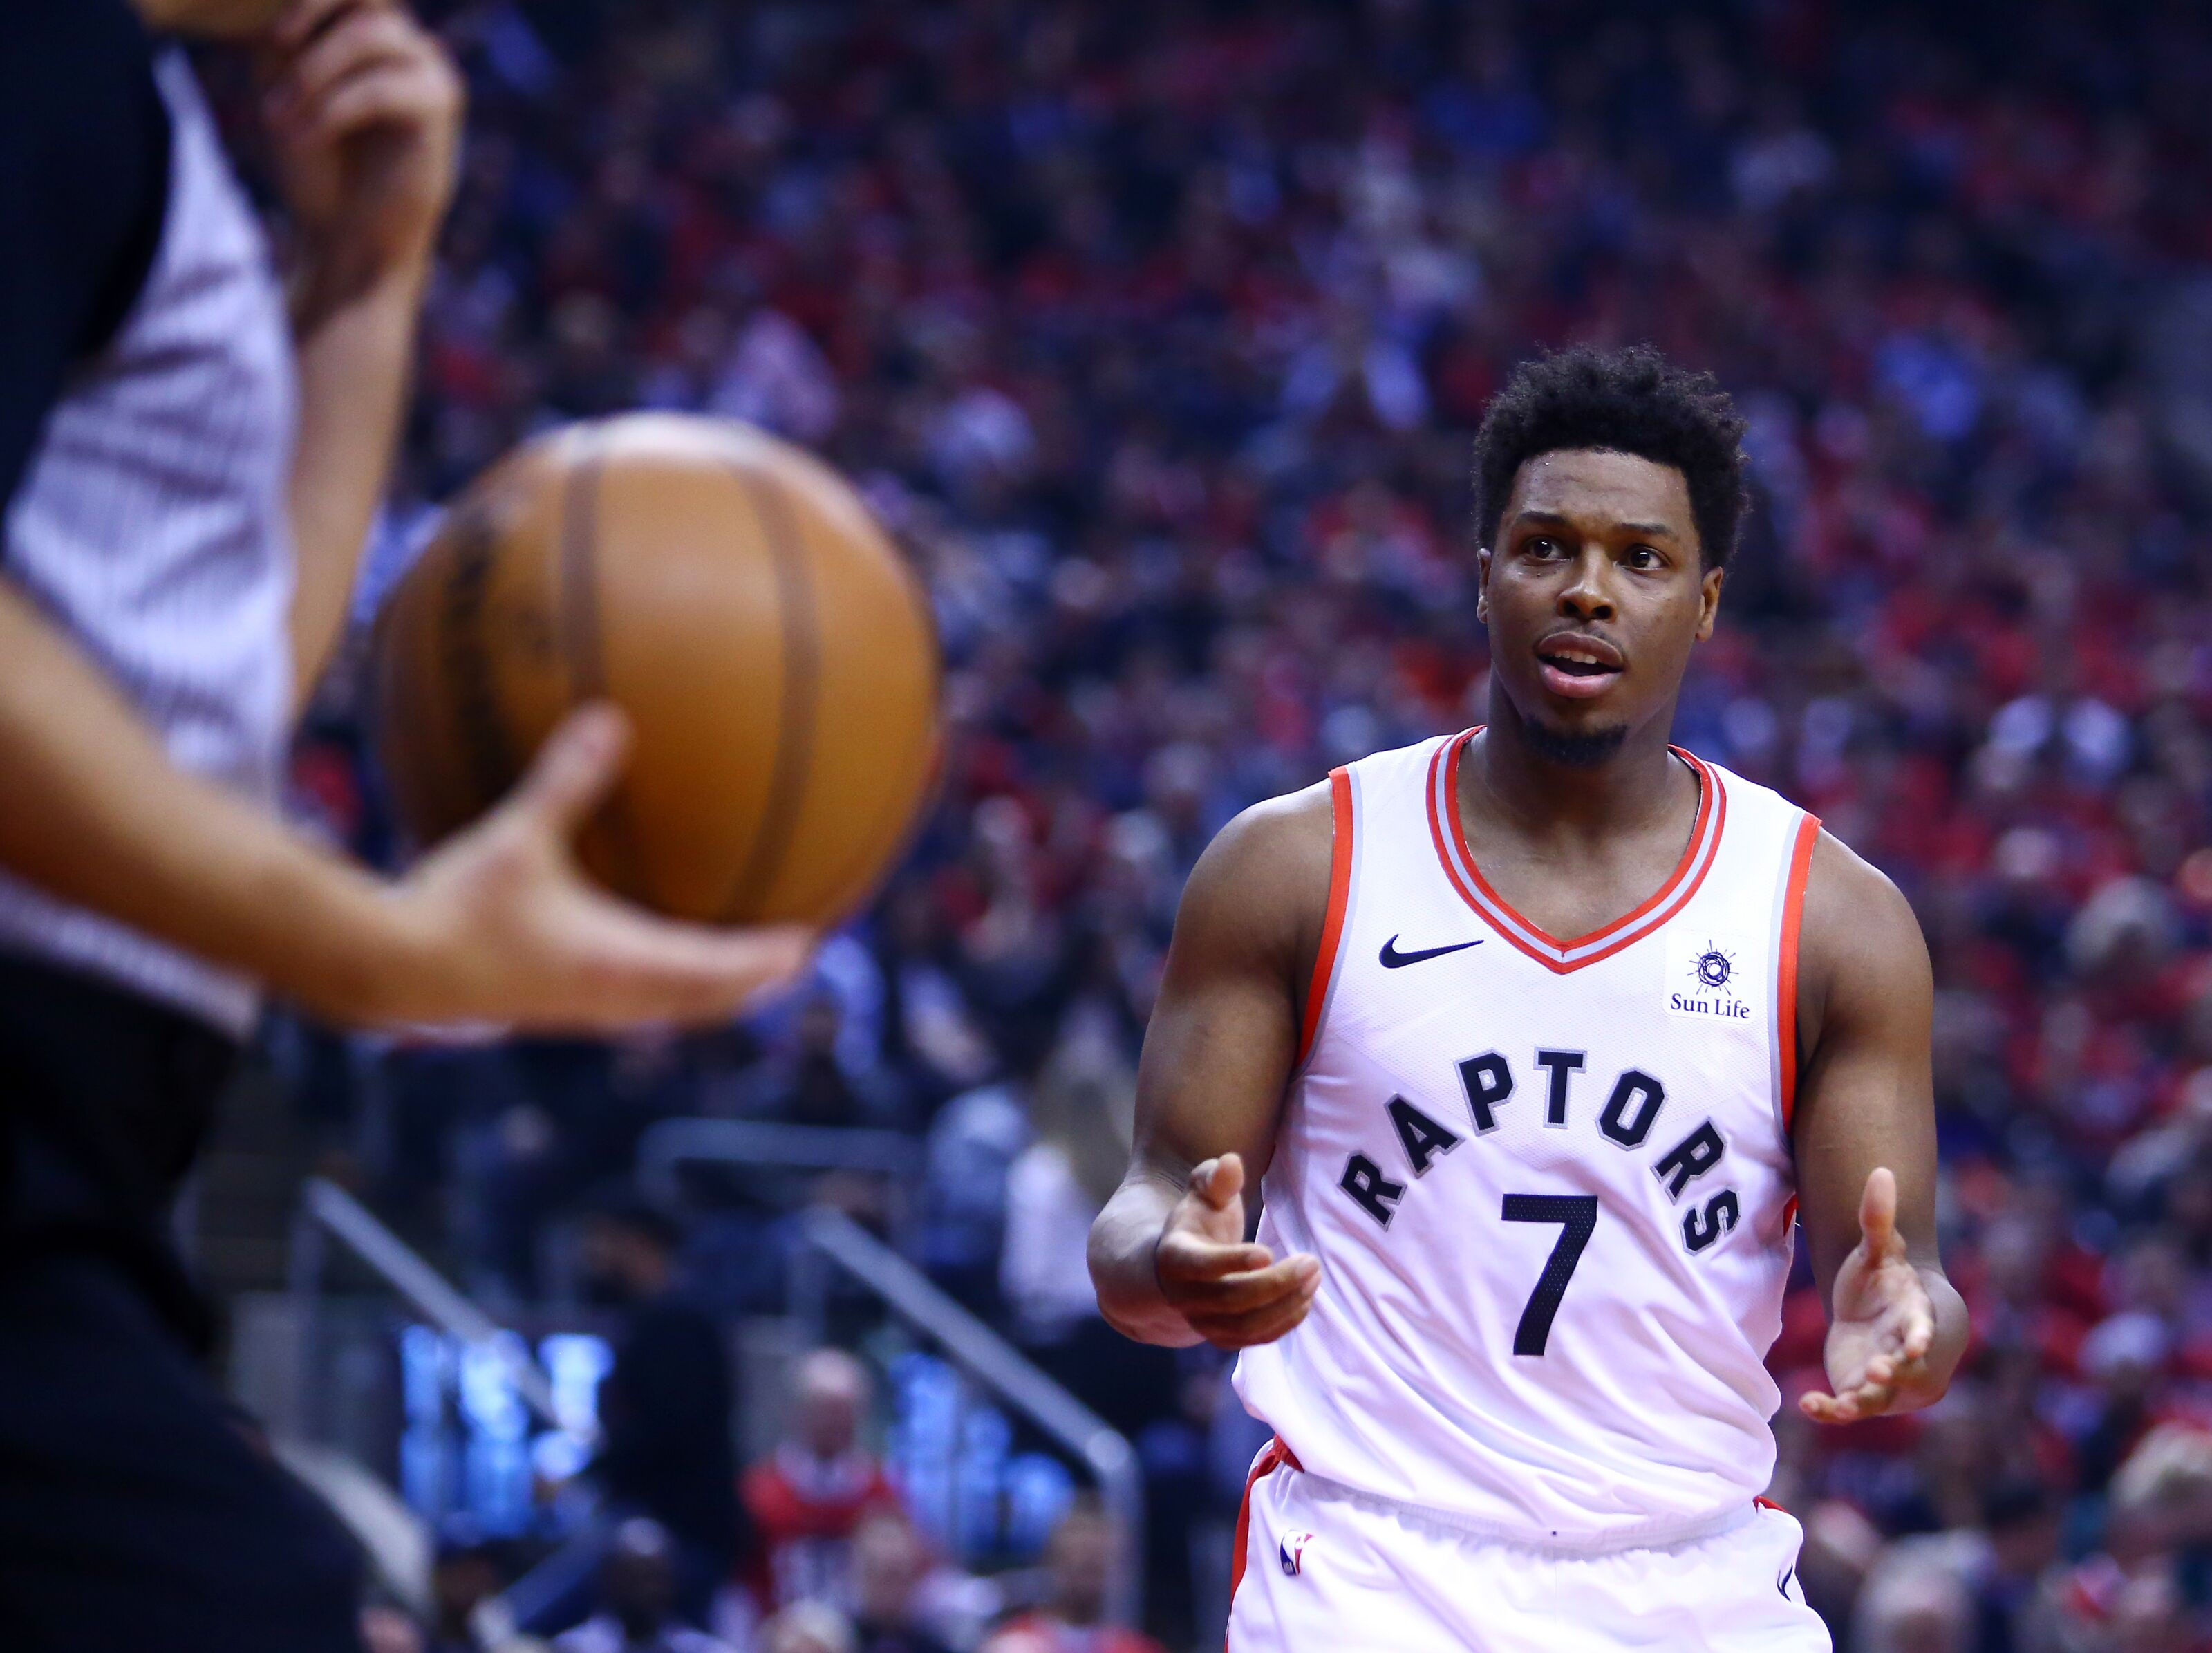 87c7946a24ec Raptors fans go nuts when Kyle Lowry gets his first points of playoffs